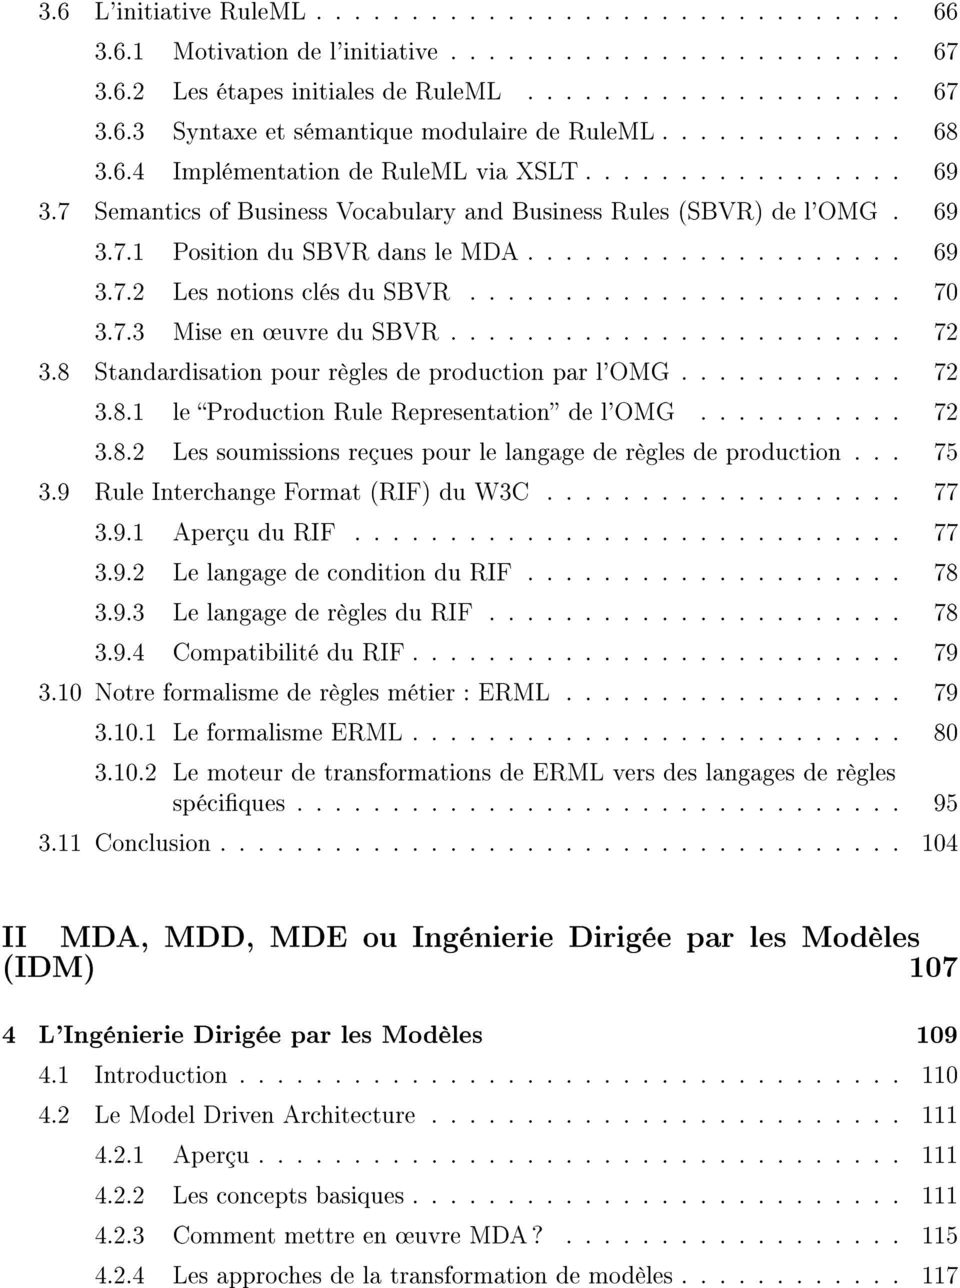 ...................... 70 3.7.3 Mise en uvre du SBVR........................ 72 3.8 Standardisation pour règles de production par l'omg............ 72 3.8.1 le Production Rule Representation de l'omg.